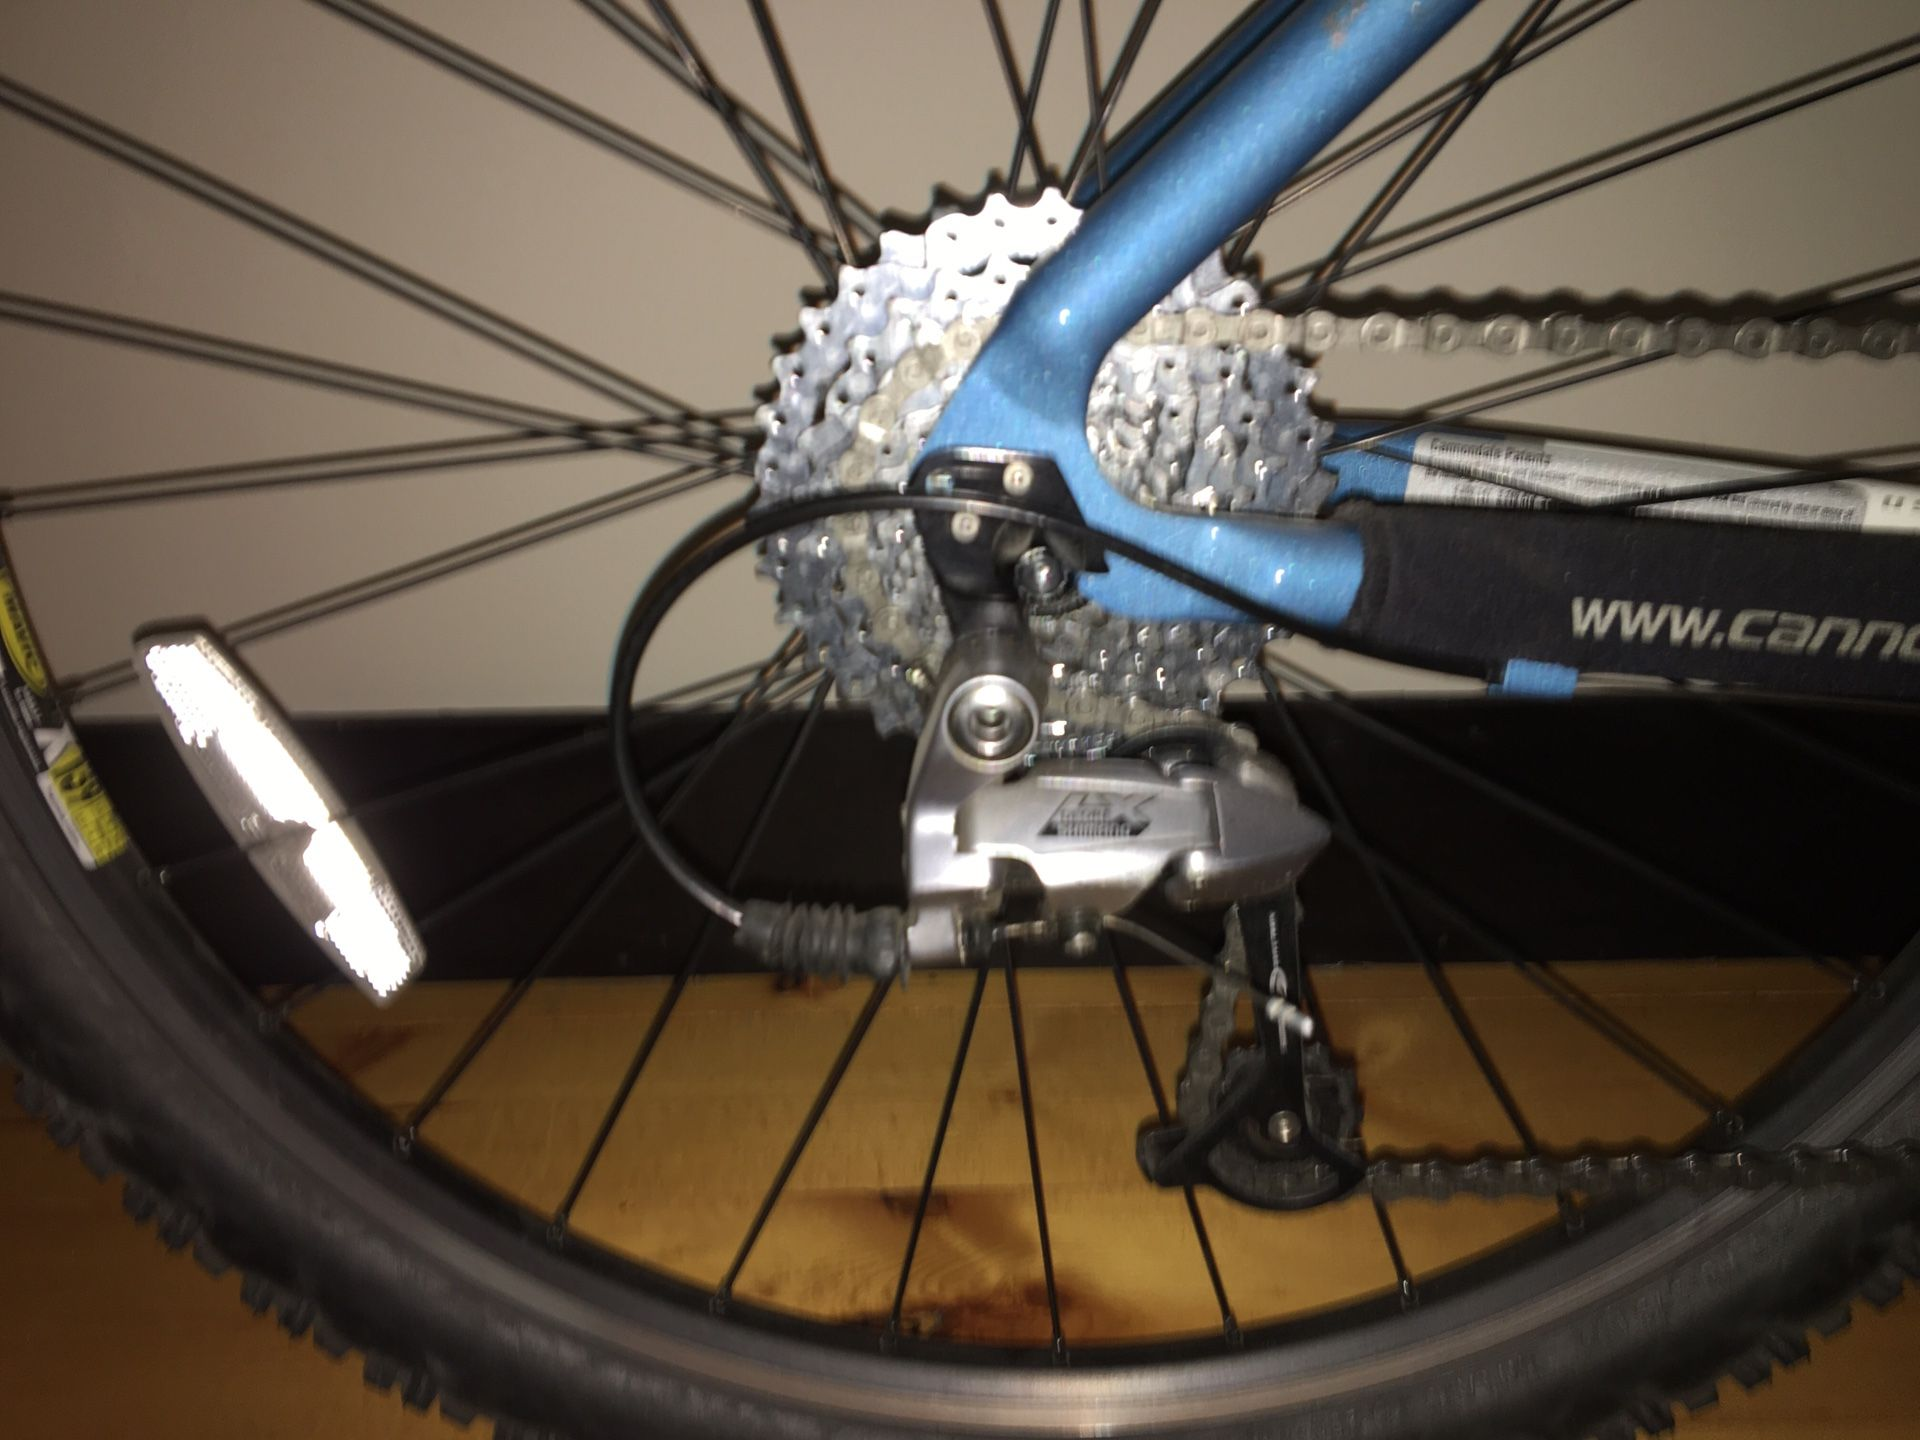 Cannondale F400 All Mountain Bike